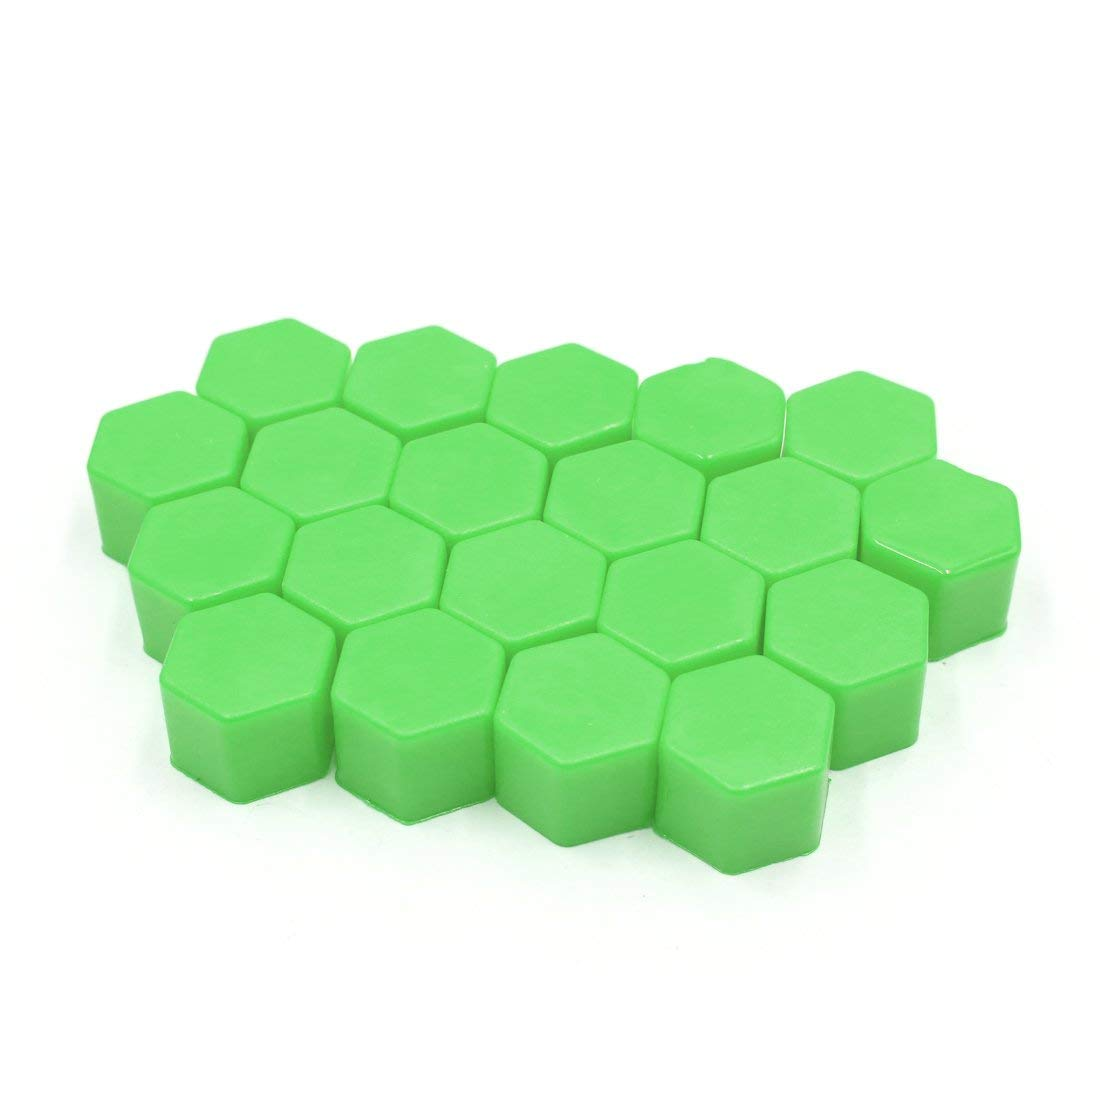 uxcell 20Pcs Green Silicone 19mm Car Wheel Nut Lug Hub Covers Screw Dust Protect Caps Hub Caps     - title=